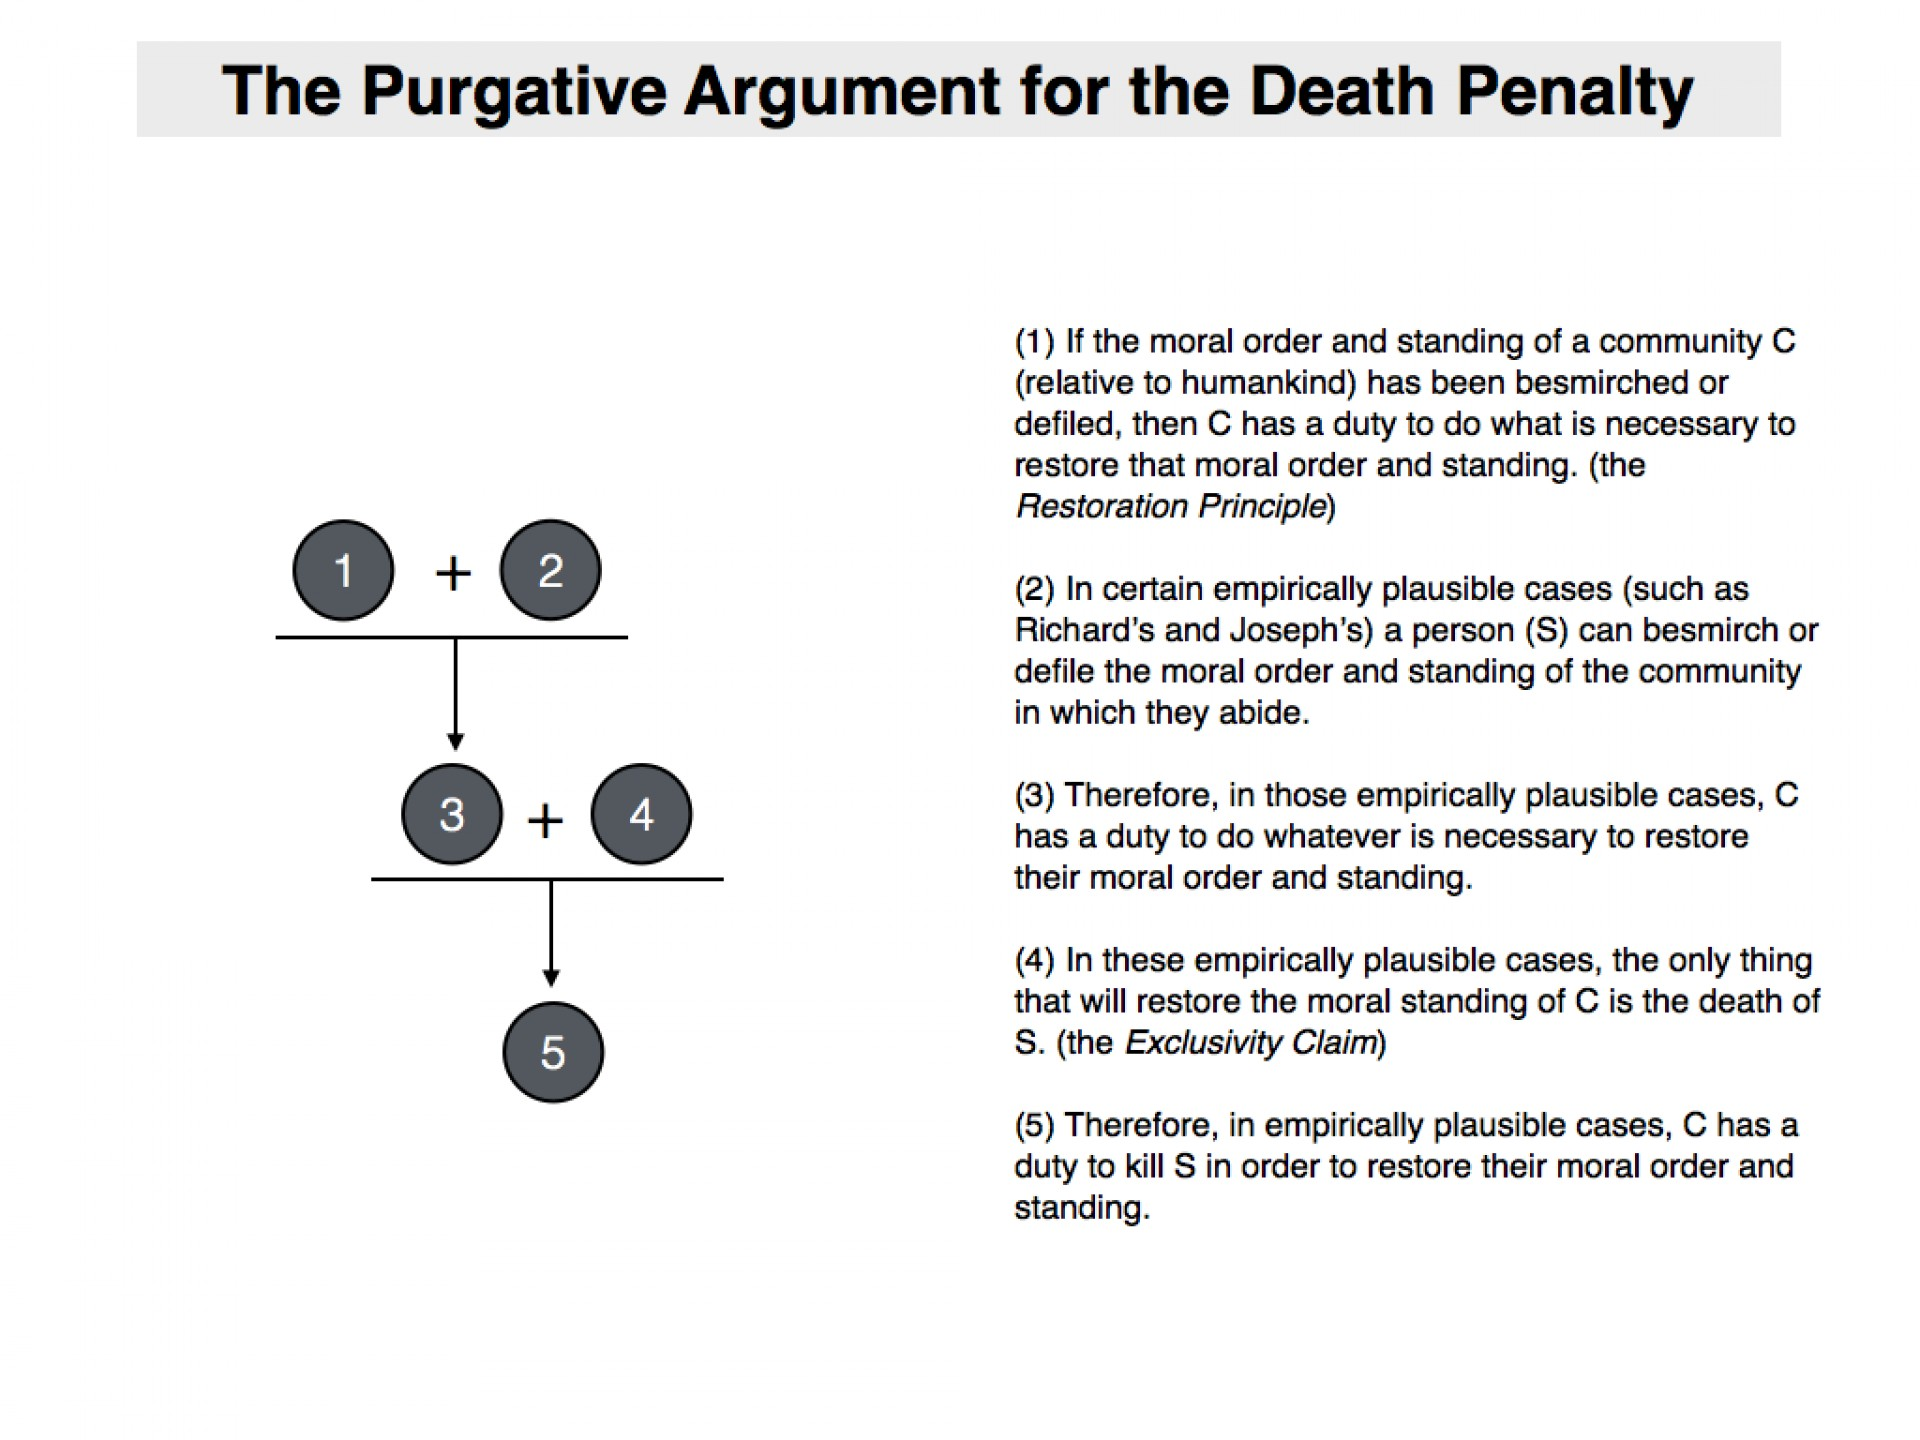 019 Against Death Penalty Essay Example Purgativeargumentfordeathpenalty Unique Anti Tagalog Conclusion Examples 1920